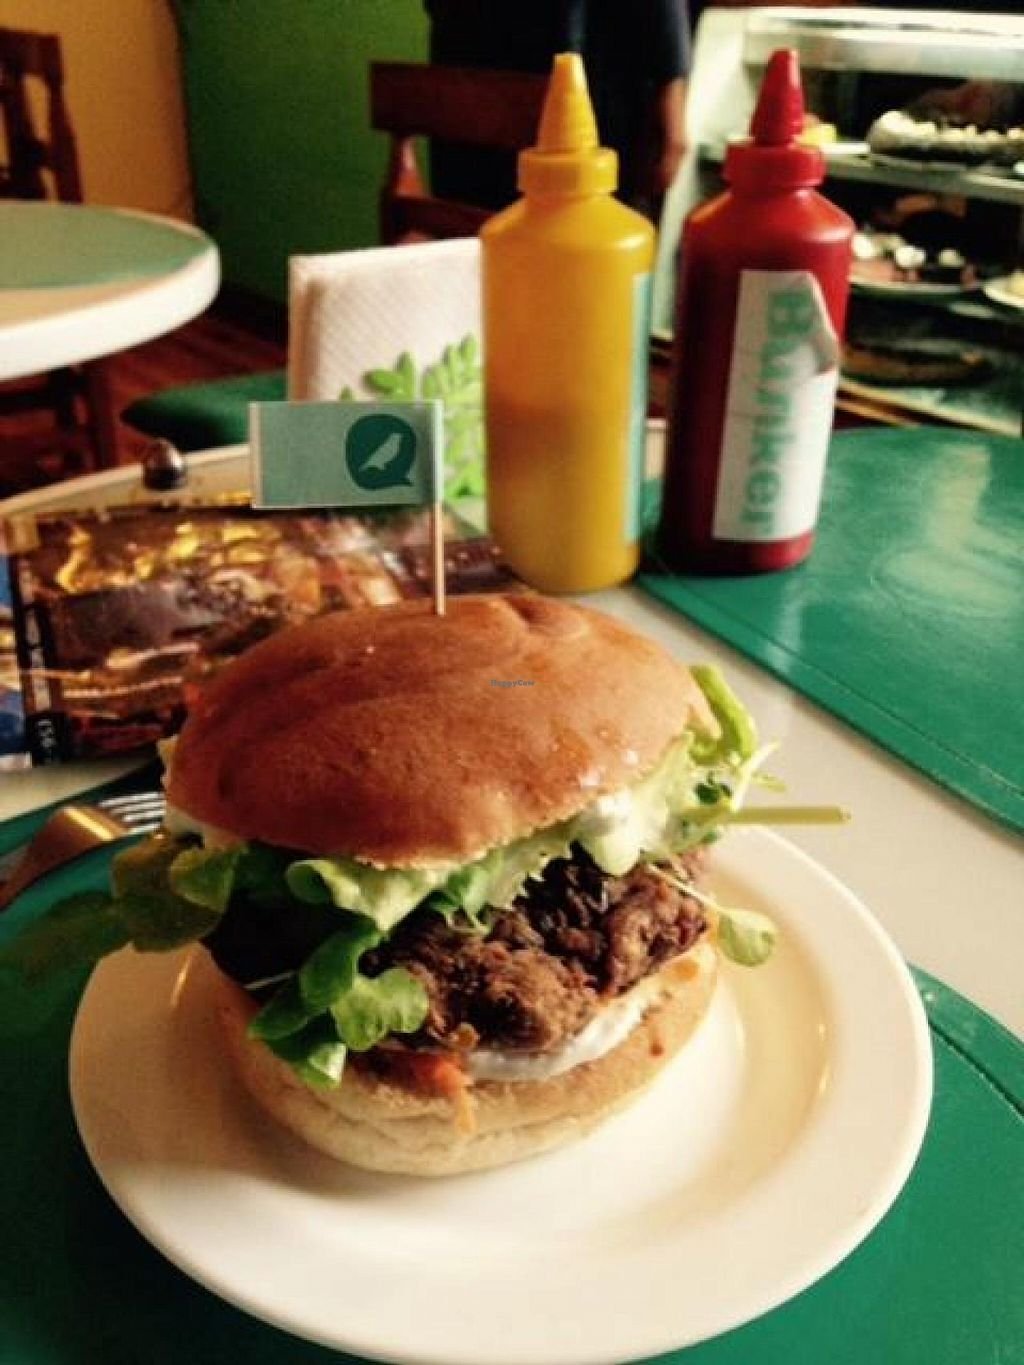 """Photo of Vegan Bunker  by <a href=""""/members/profile/TableForOne"""">TableForOne</a> <br/>boiger <br/> December 7, 2014  - <a href='/contact/abuse/image/34866/87403'>Report</a>"""